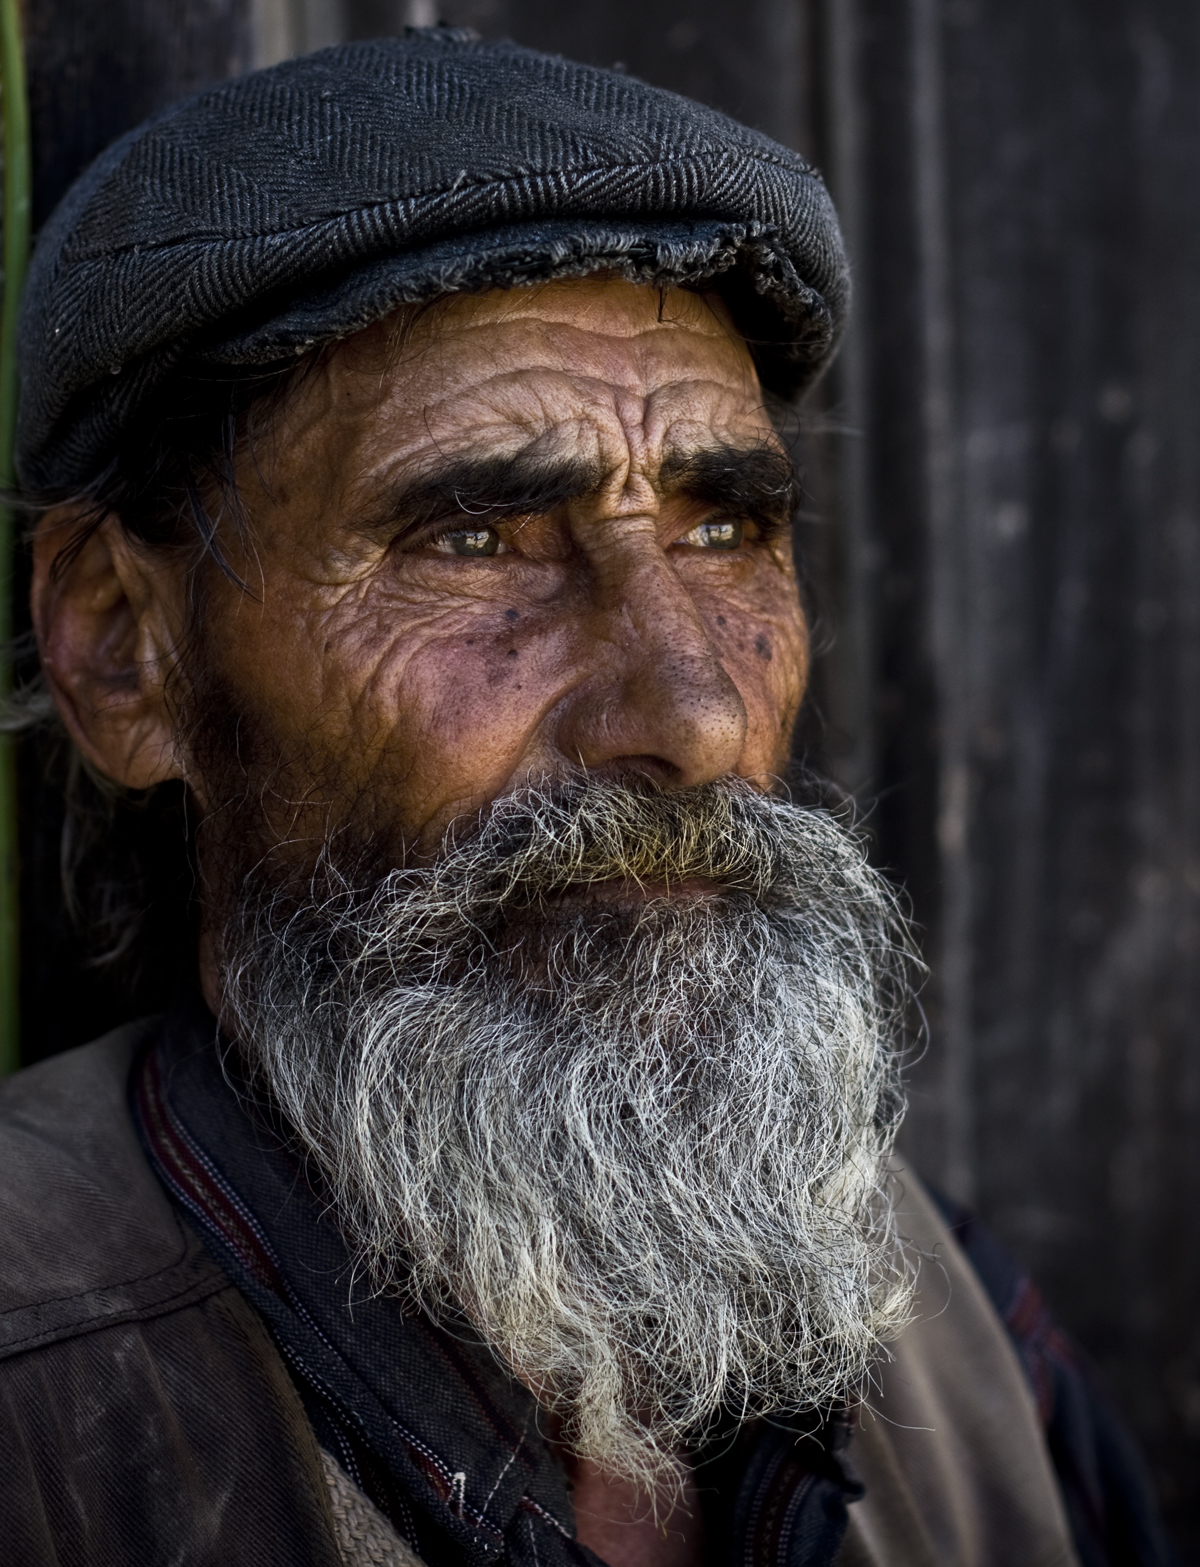 1000+ images about old people on Pinterest | Old mans, Old ... An Old Man Face With Beards Images